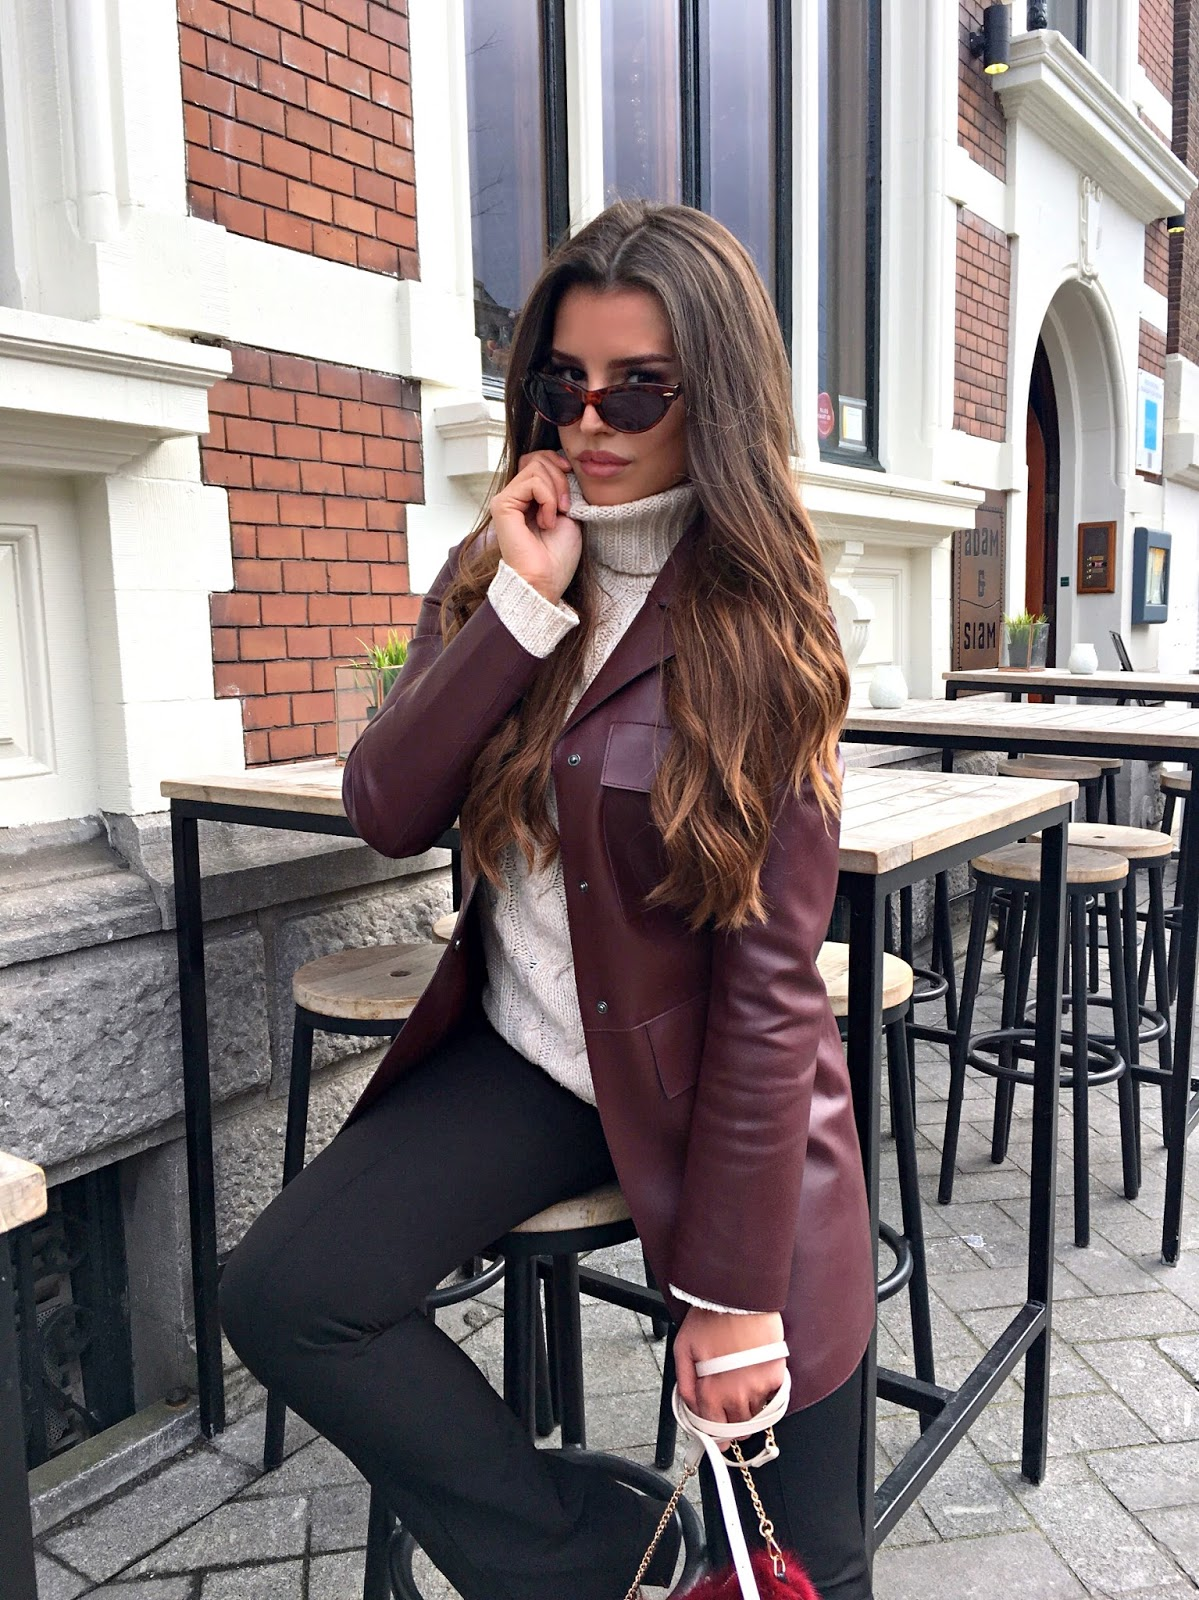 BURGUNDY PRE-SPRING OUTFIT